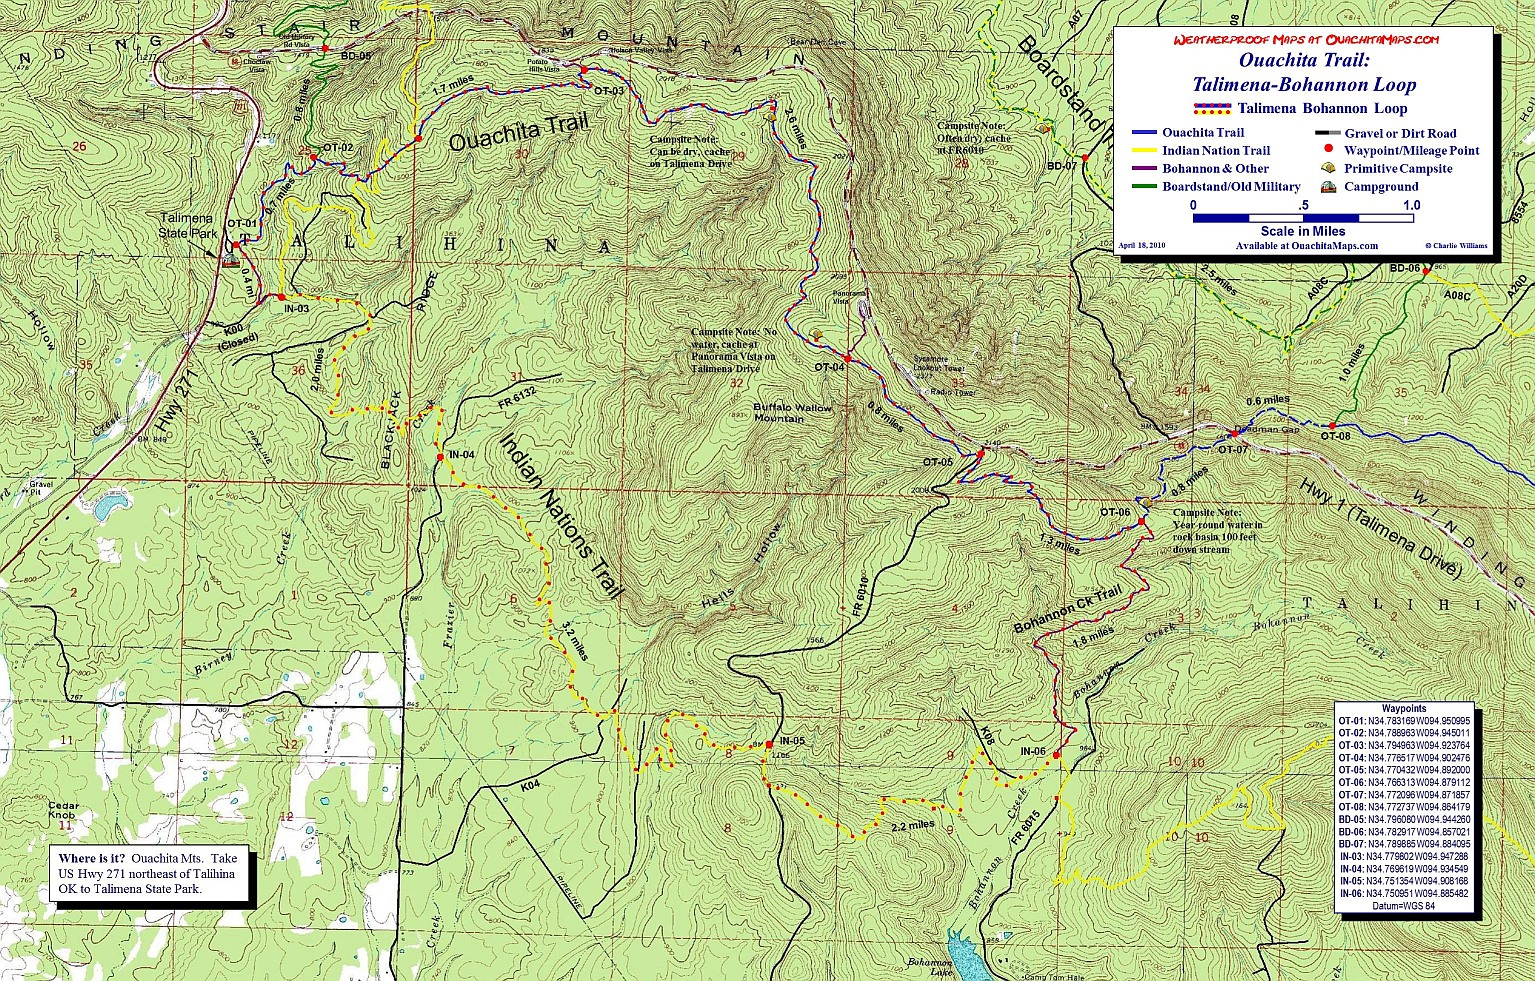 Talihina Oklahoma Map.Talimena Bohannon Loop Of The Ouachita Trail Oklahoma